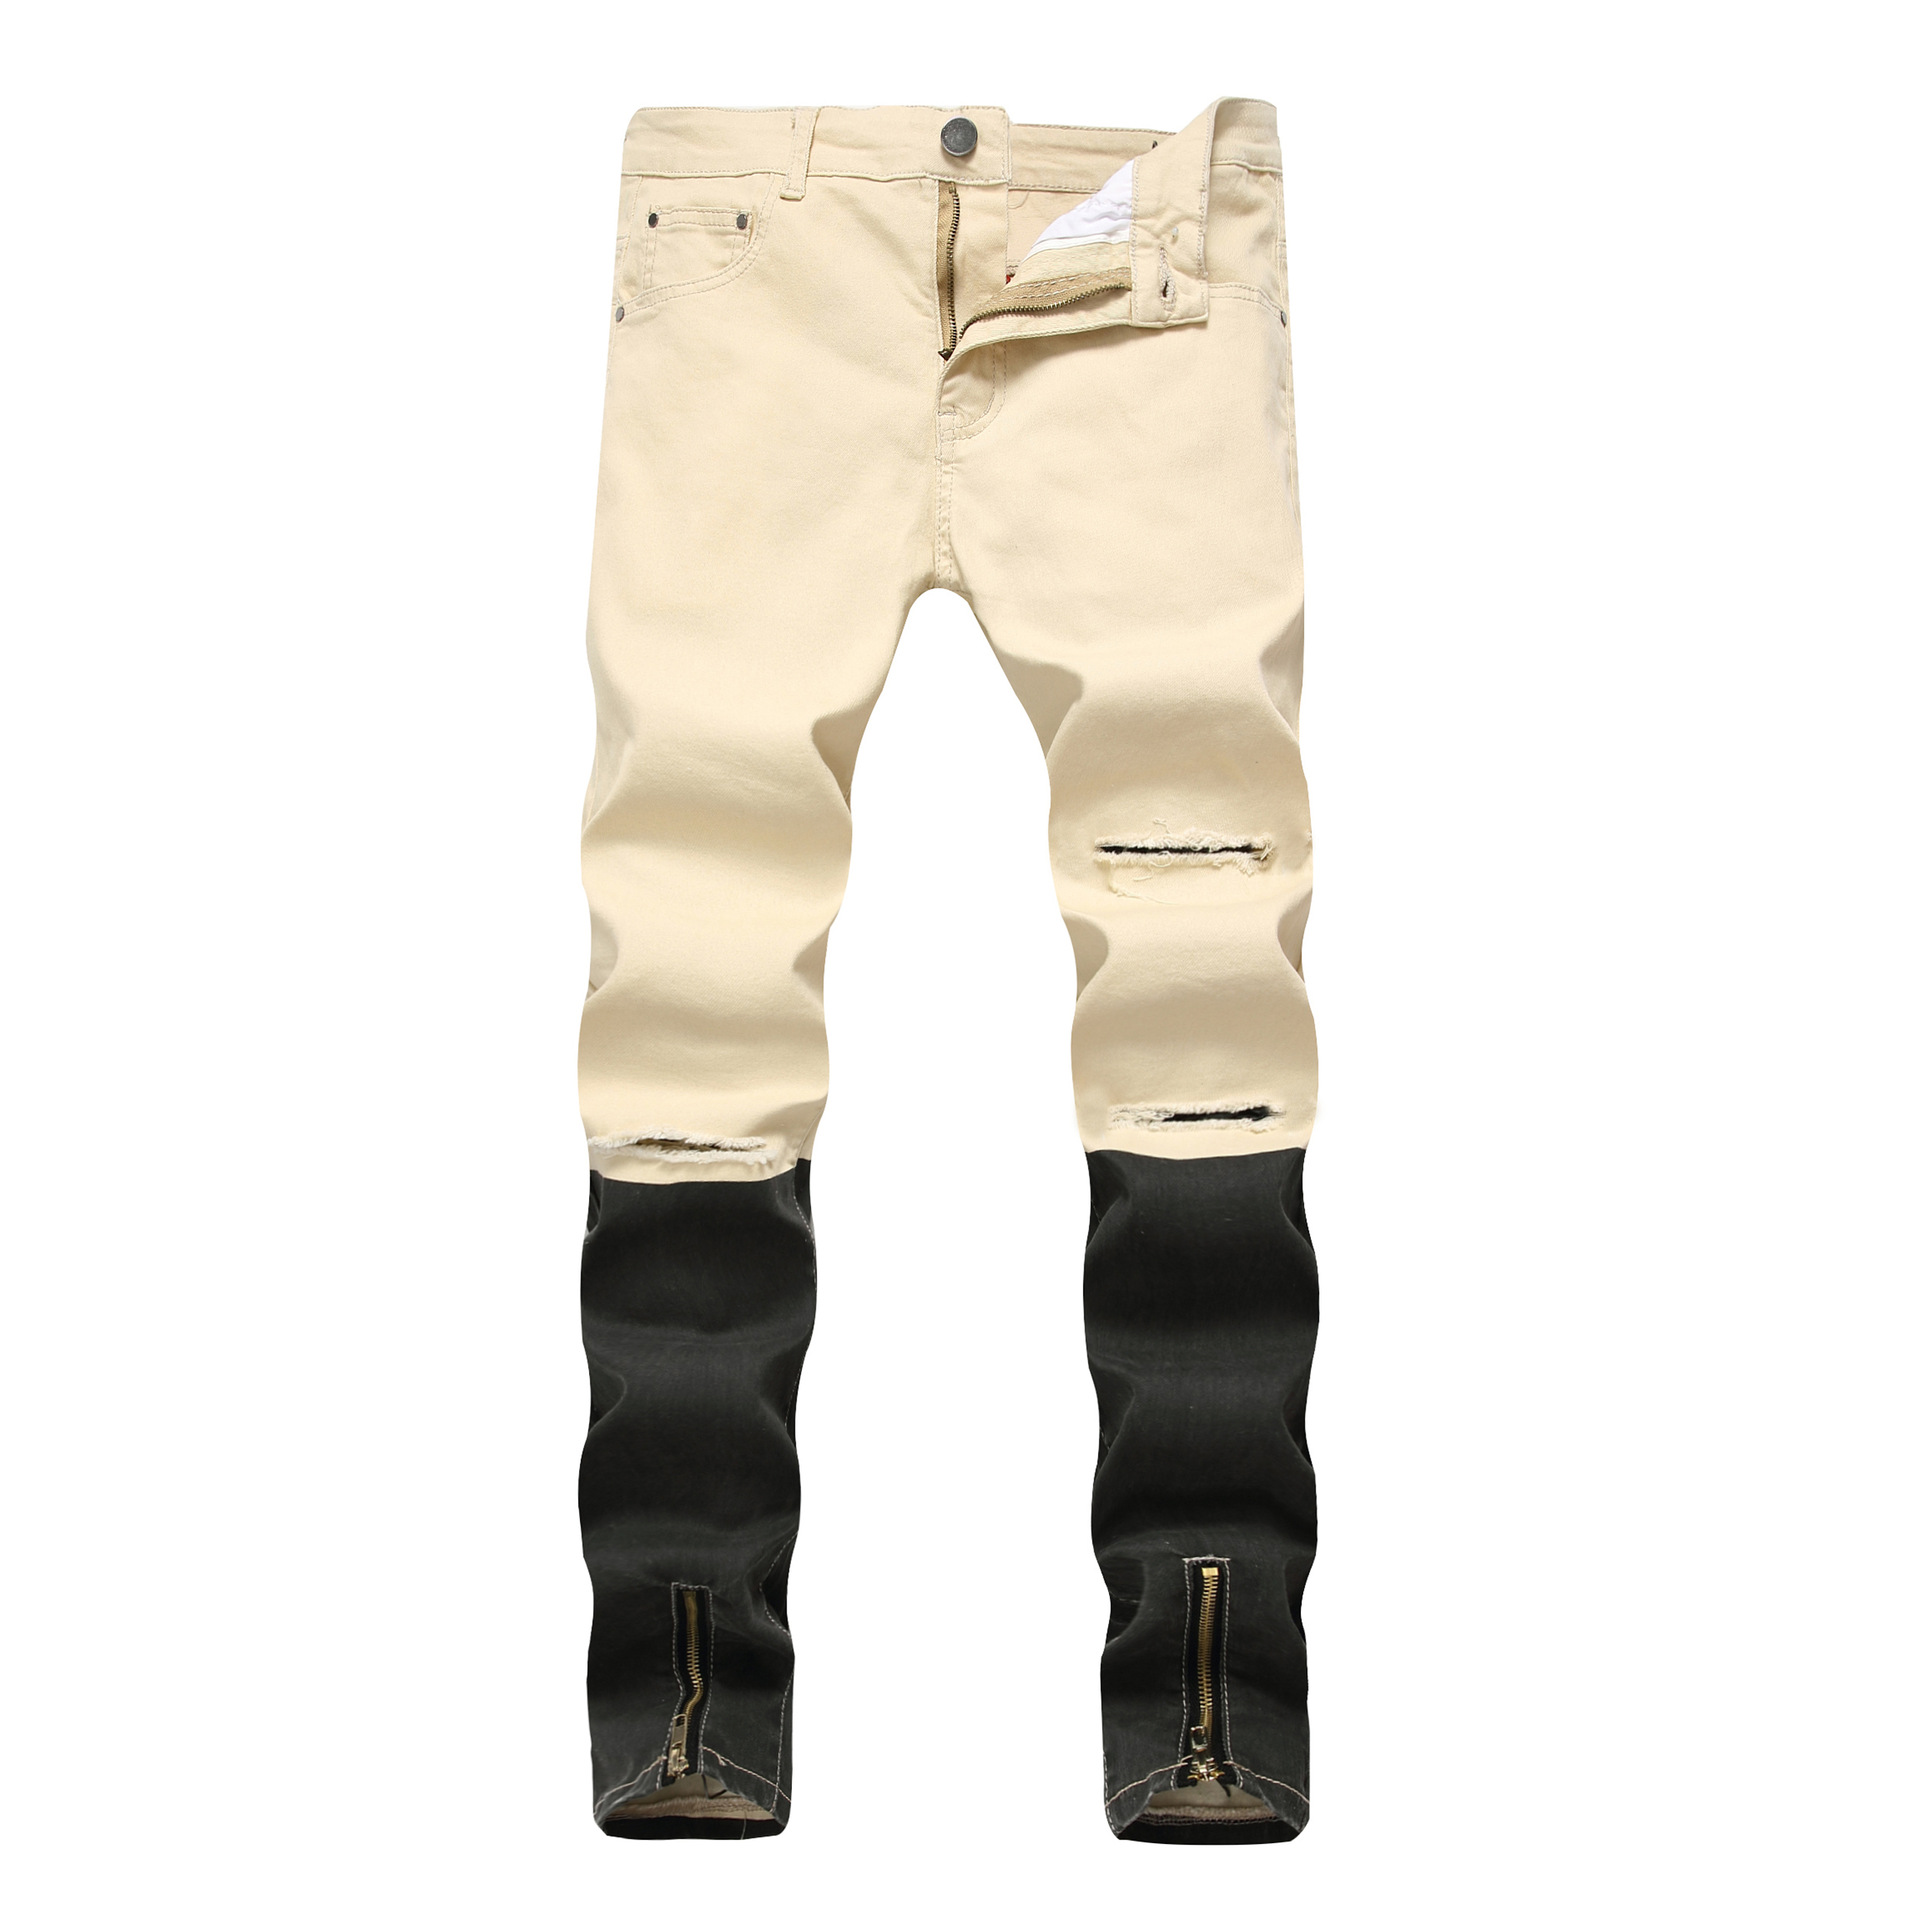 2018 Mens Clothes Summer New Fashion Trousers Zipper Mid Waist Jeans Casual Stretch Tight Hole Outside Mens Pants Size 28-40